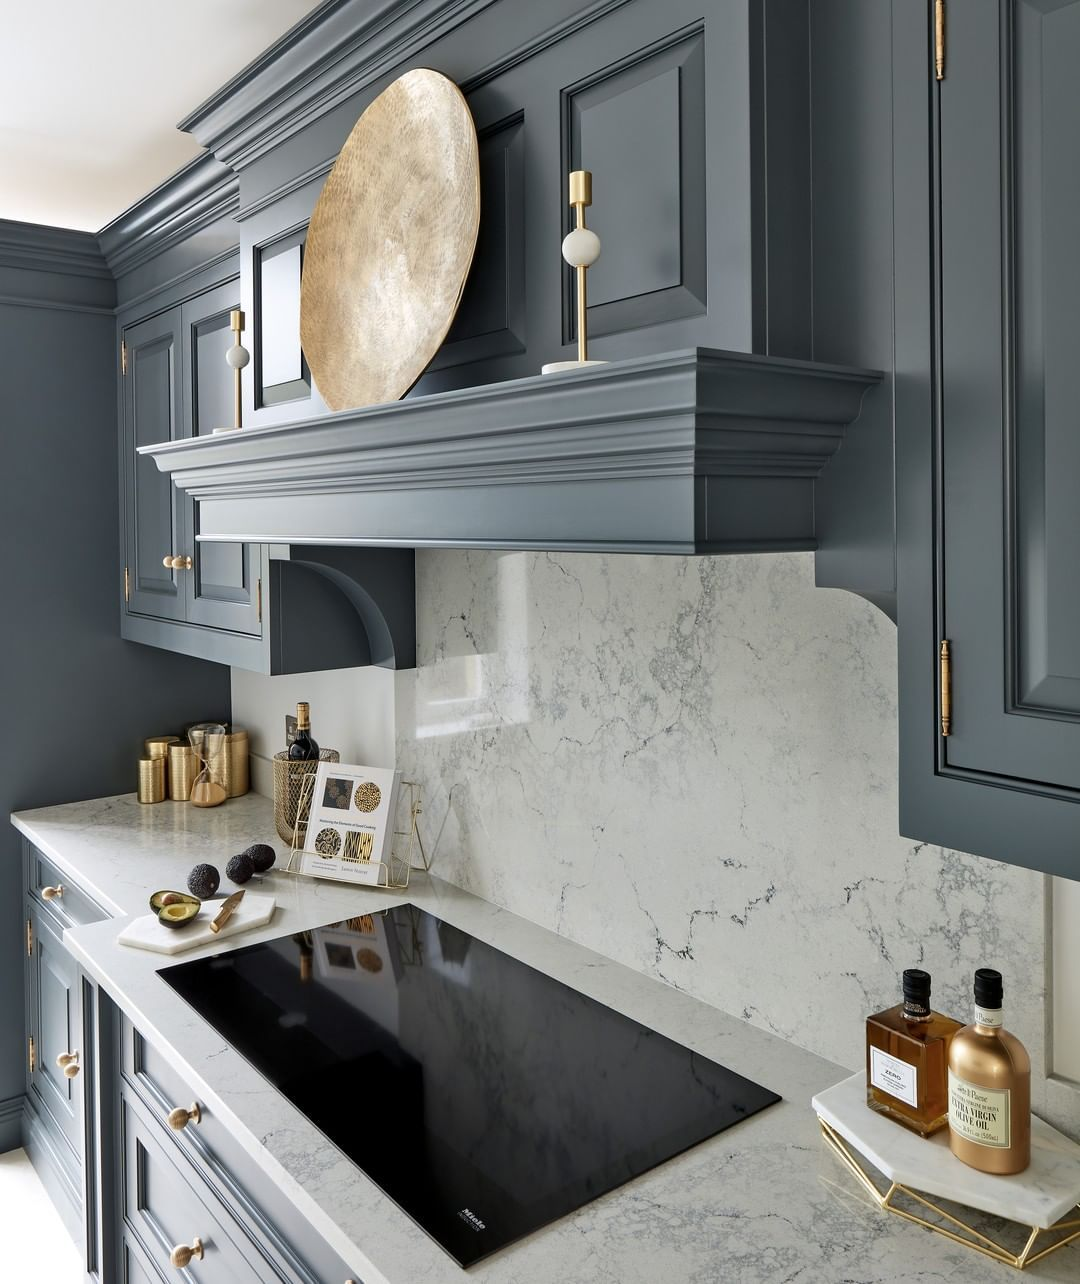 Bring Traditional Opulence Into The 21st Century From Exquisite Cornice Detaili Darkkitchen Grey Kitchen Designs Luxury Kitchen Design Kitchen Room Design